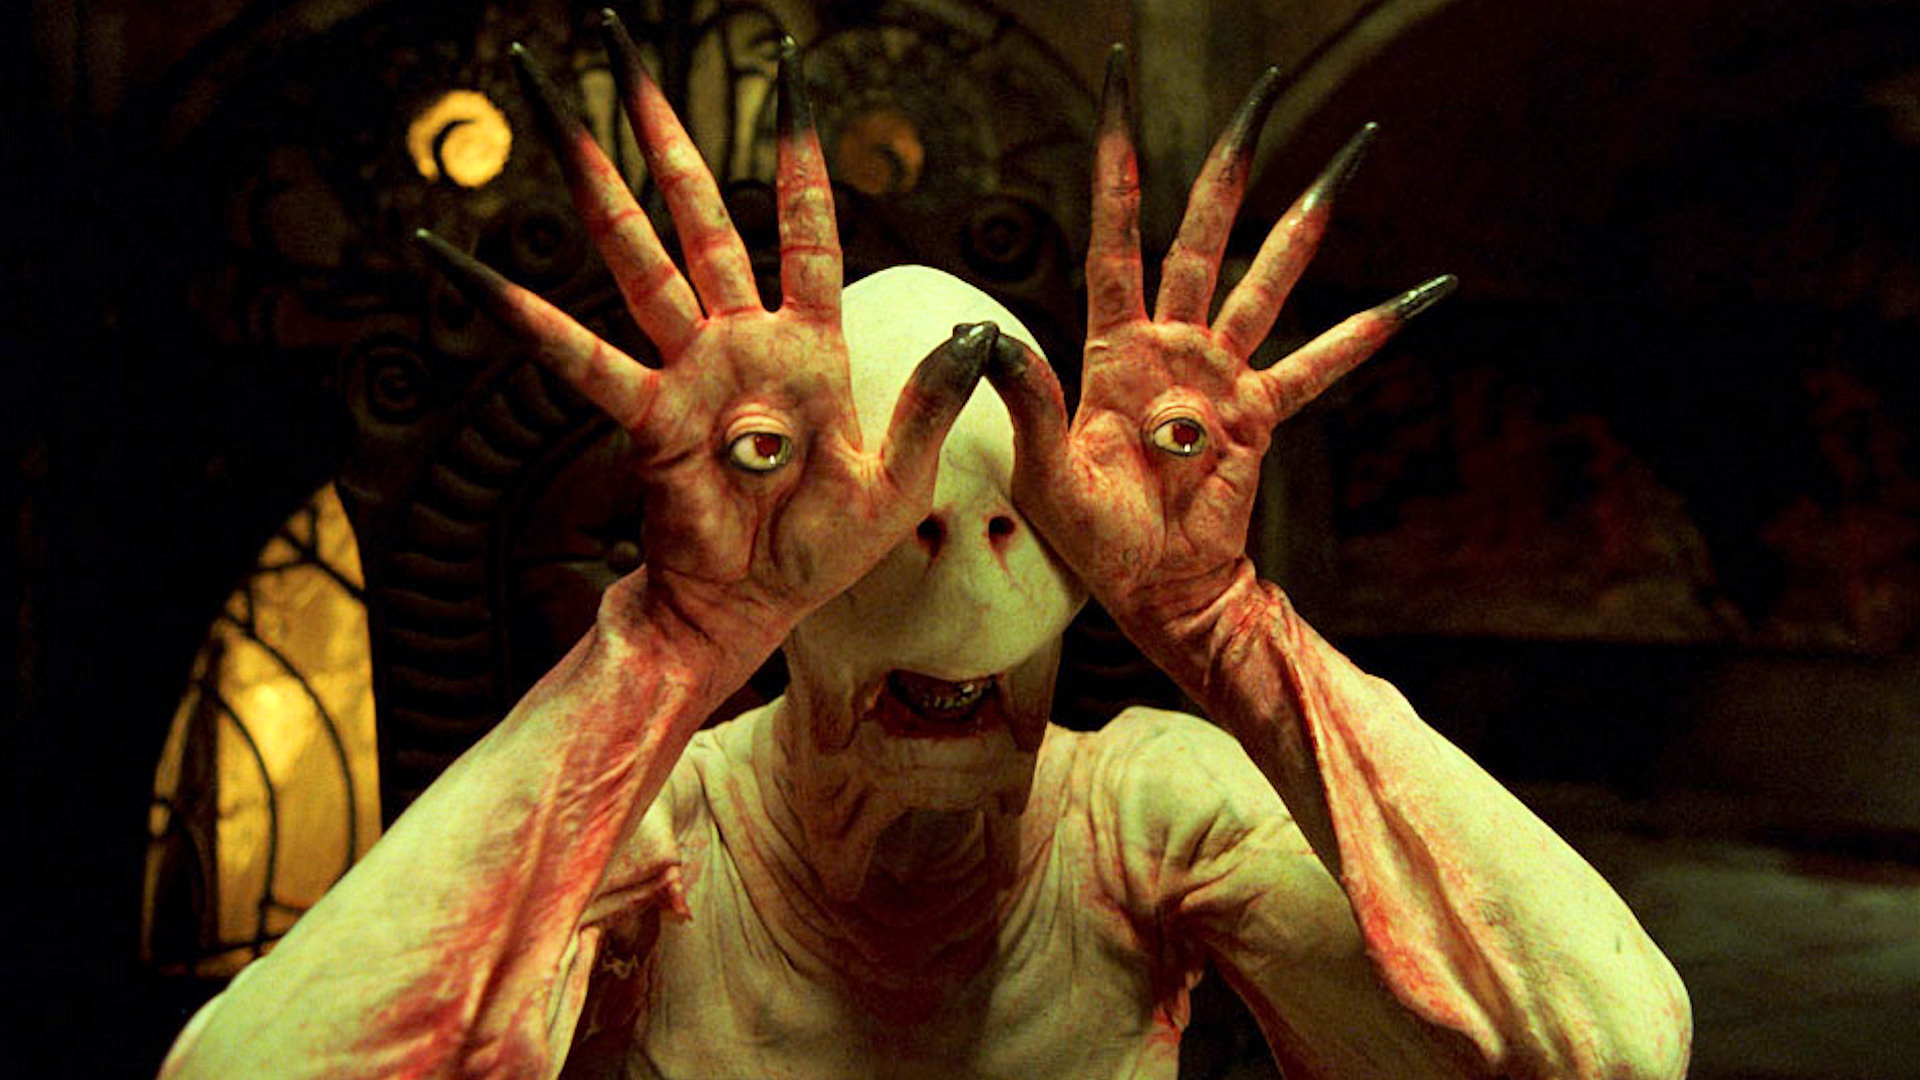 Pan's Labyrinth, movies/tv, animals, relationships, food & drinks